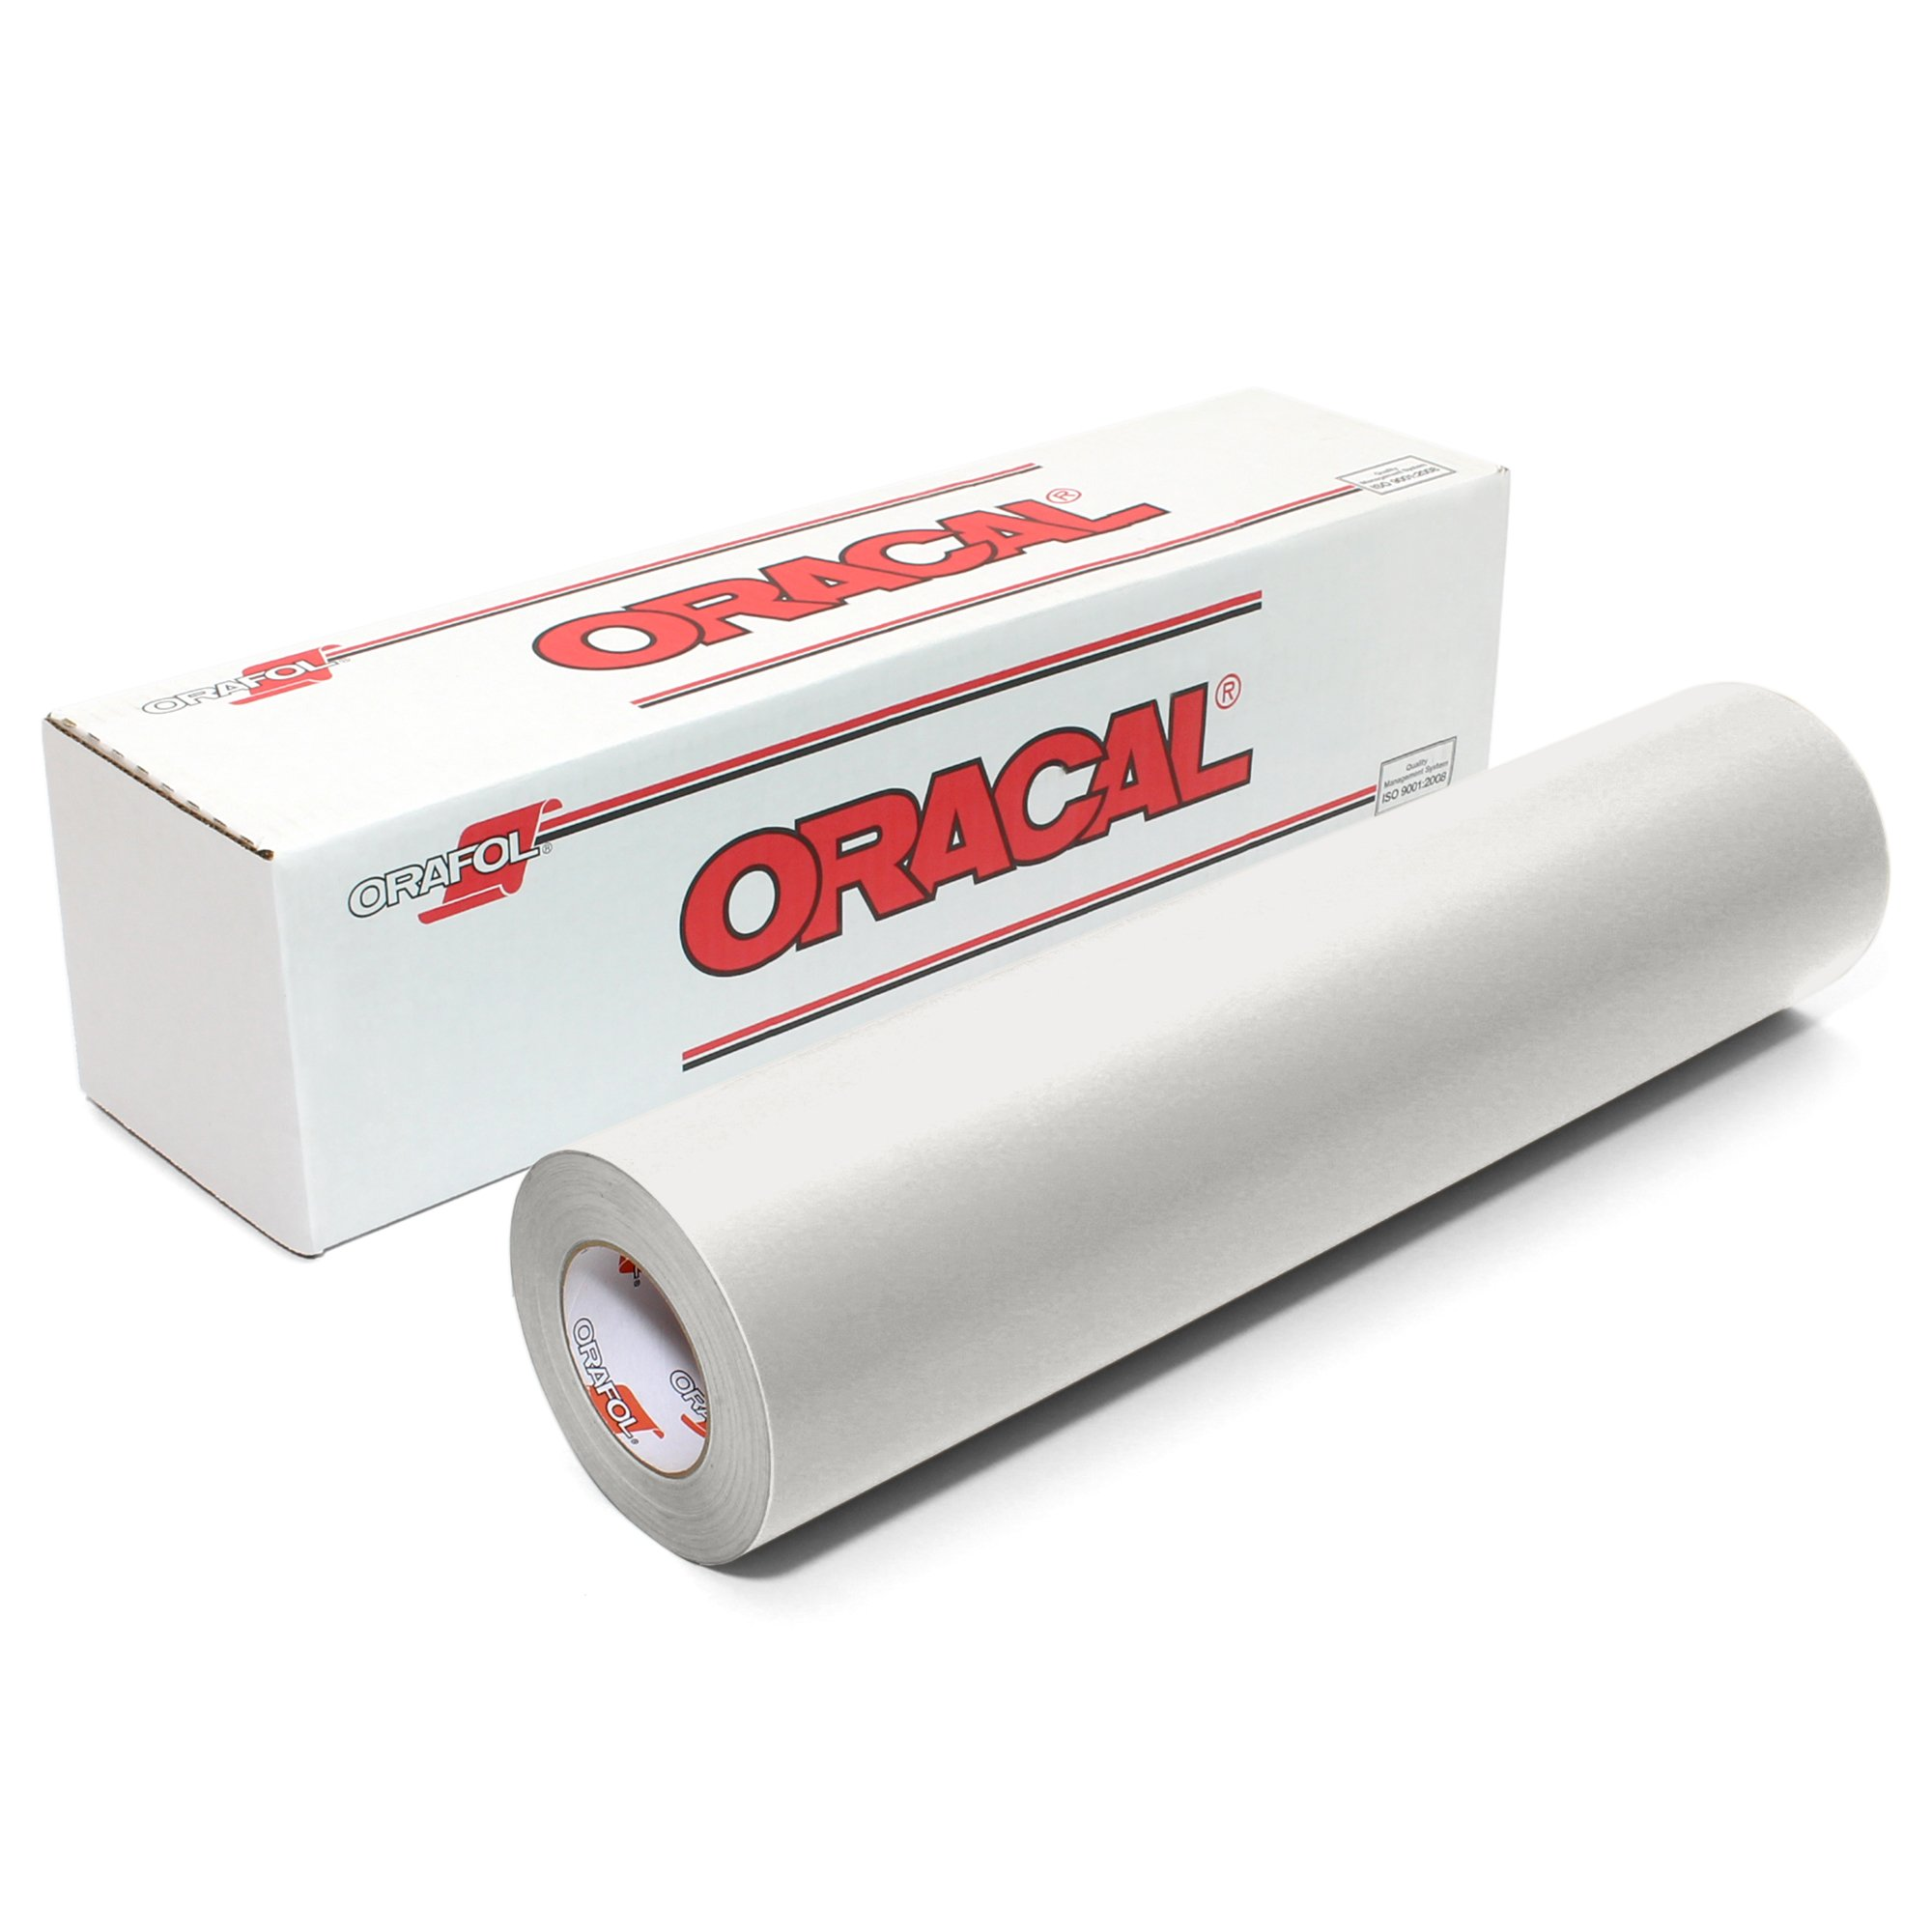 Oracal 631 Matte Vinyl Roll 12 Inches by 6 Feet - 88 Available Colors